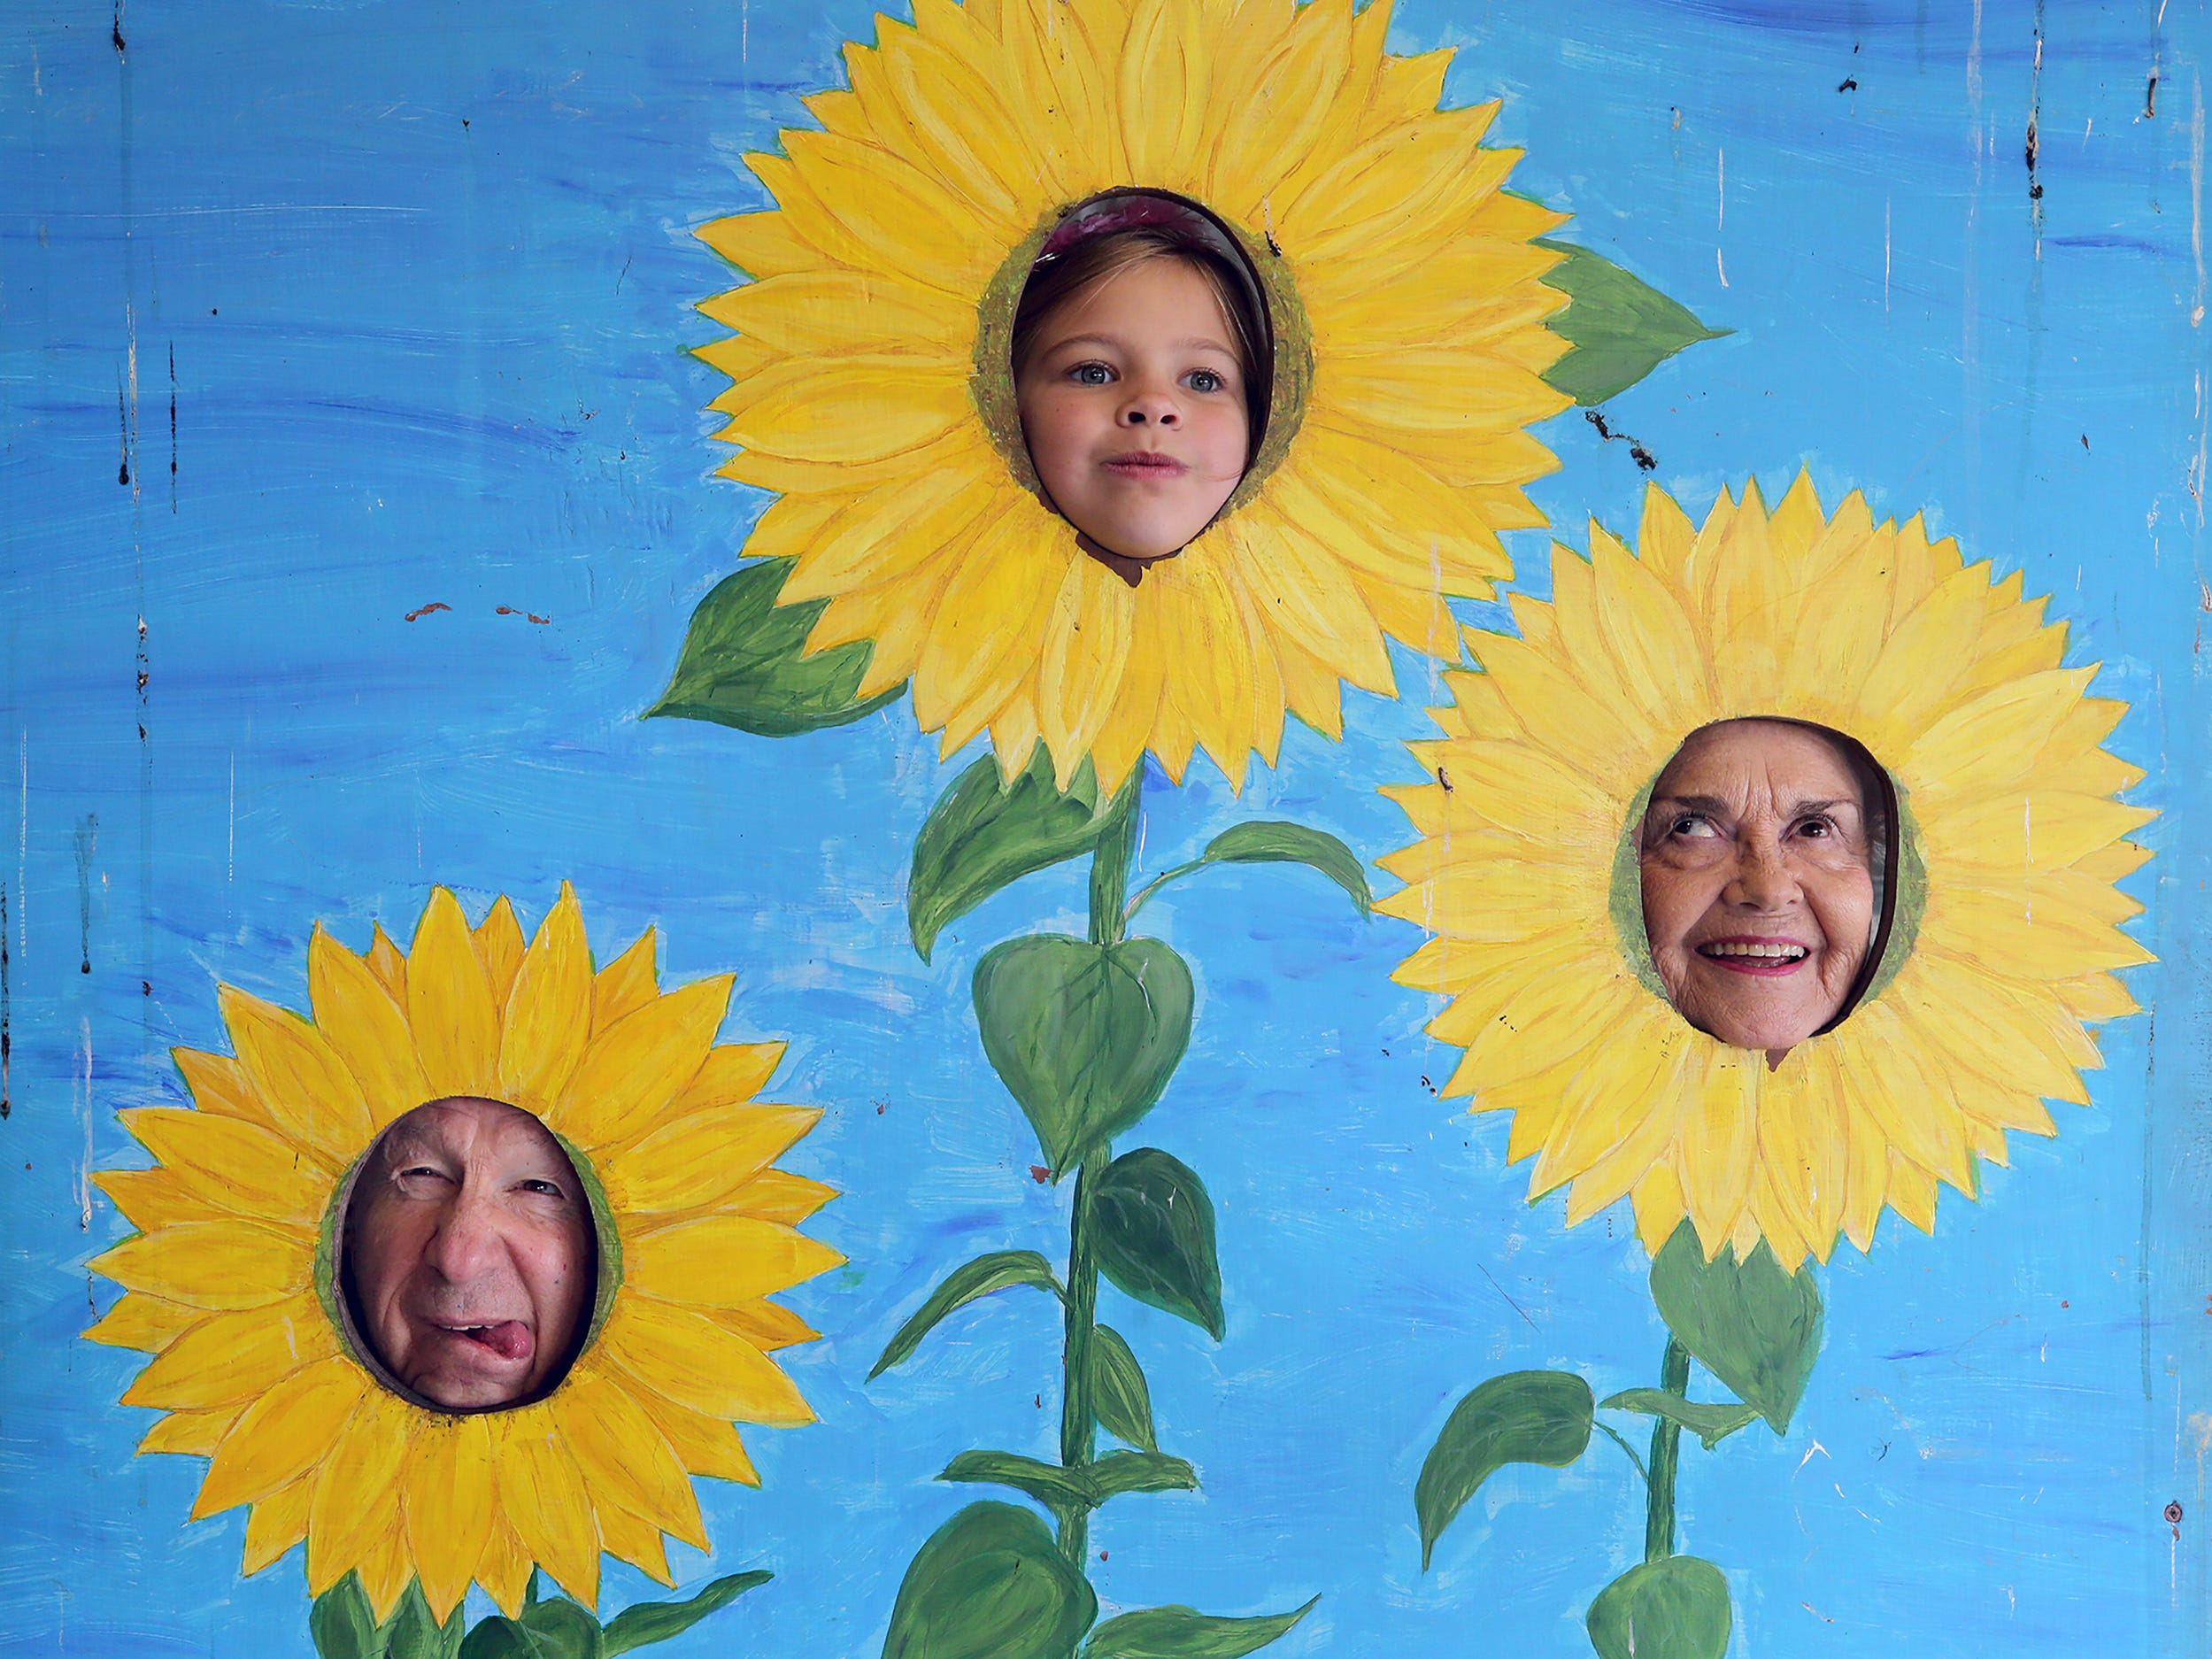 Glenn Hostetter, left, of Bremerton, his granddaughter Lucy Hostetter, top center, from Seattle, and wife Carol make funny faces as they get their picture taken as sunflowers after touring the the corn maze at Pheasant Fields Farms in Silverdale on Monday, October 29, 2018. The maze is open daily from 10 a.m. until 6 p.m. until November 1.